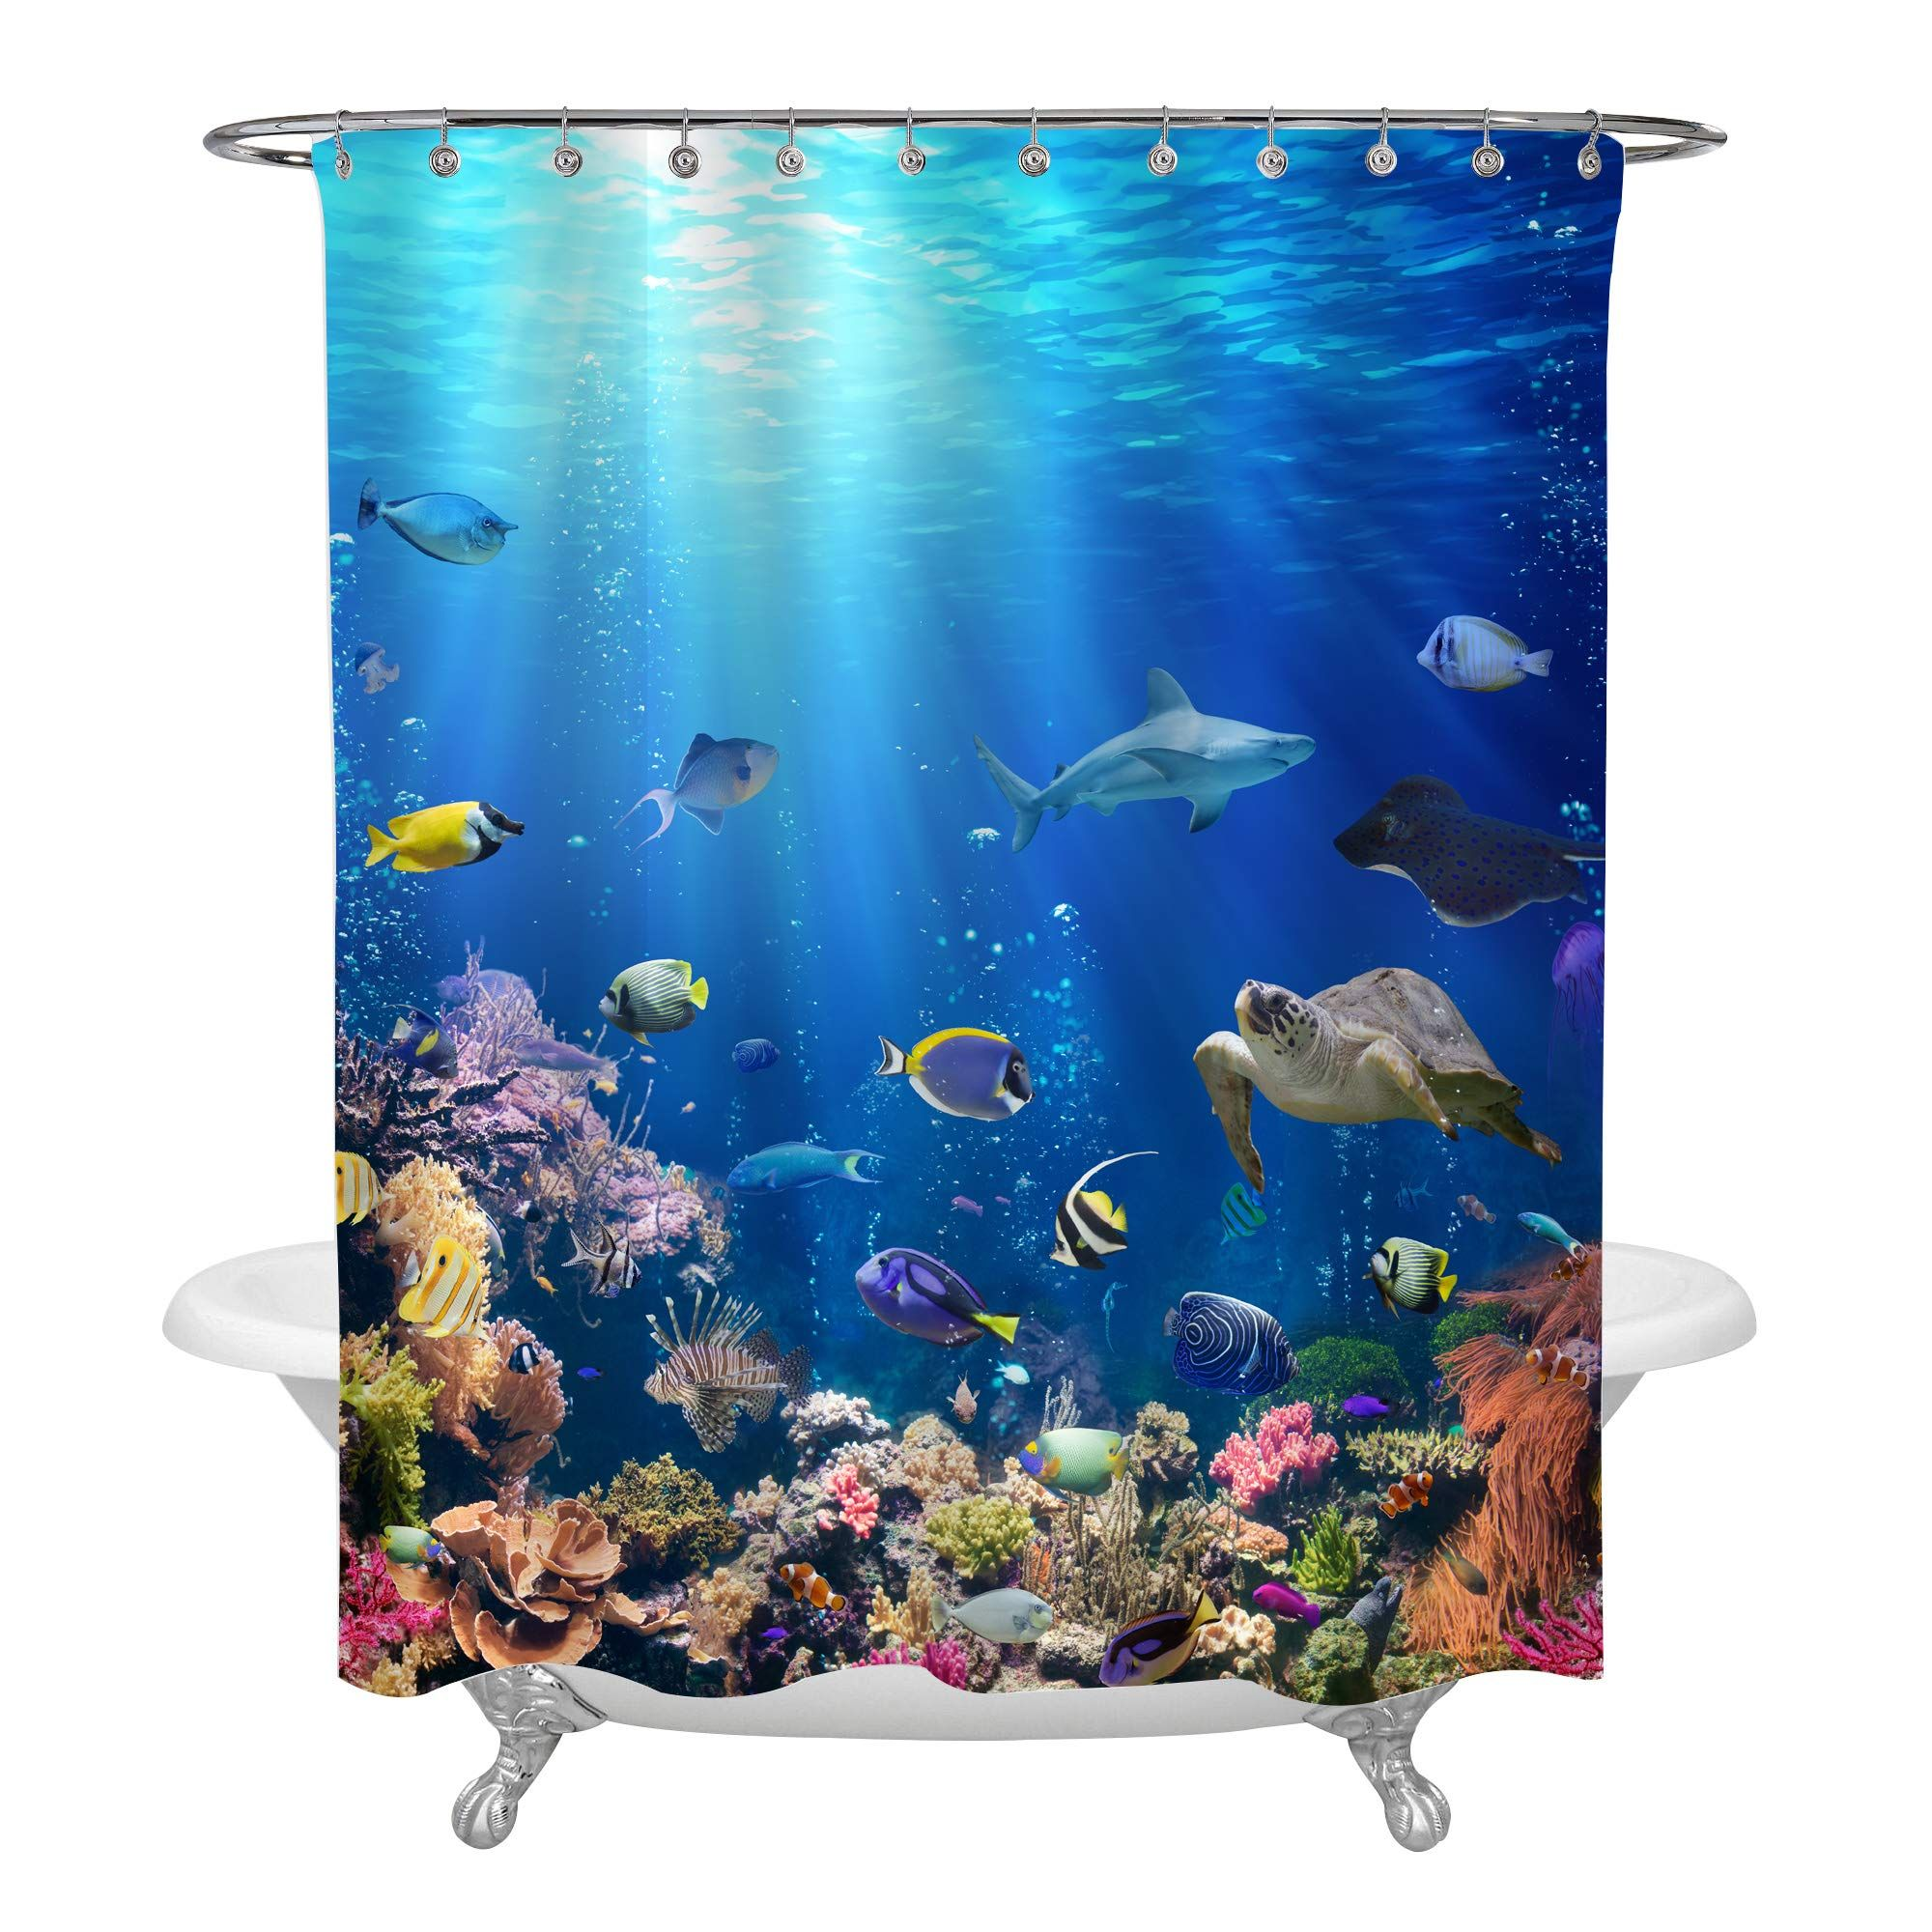 Mitovilla Underwater Scene With Coral Reef And Tropical Fish